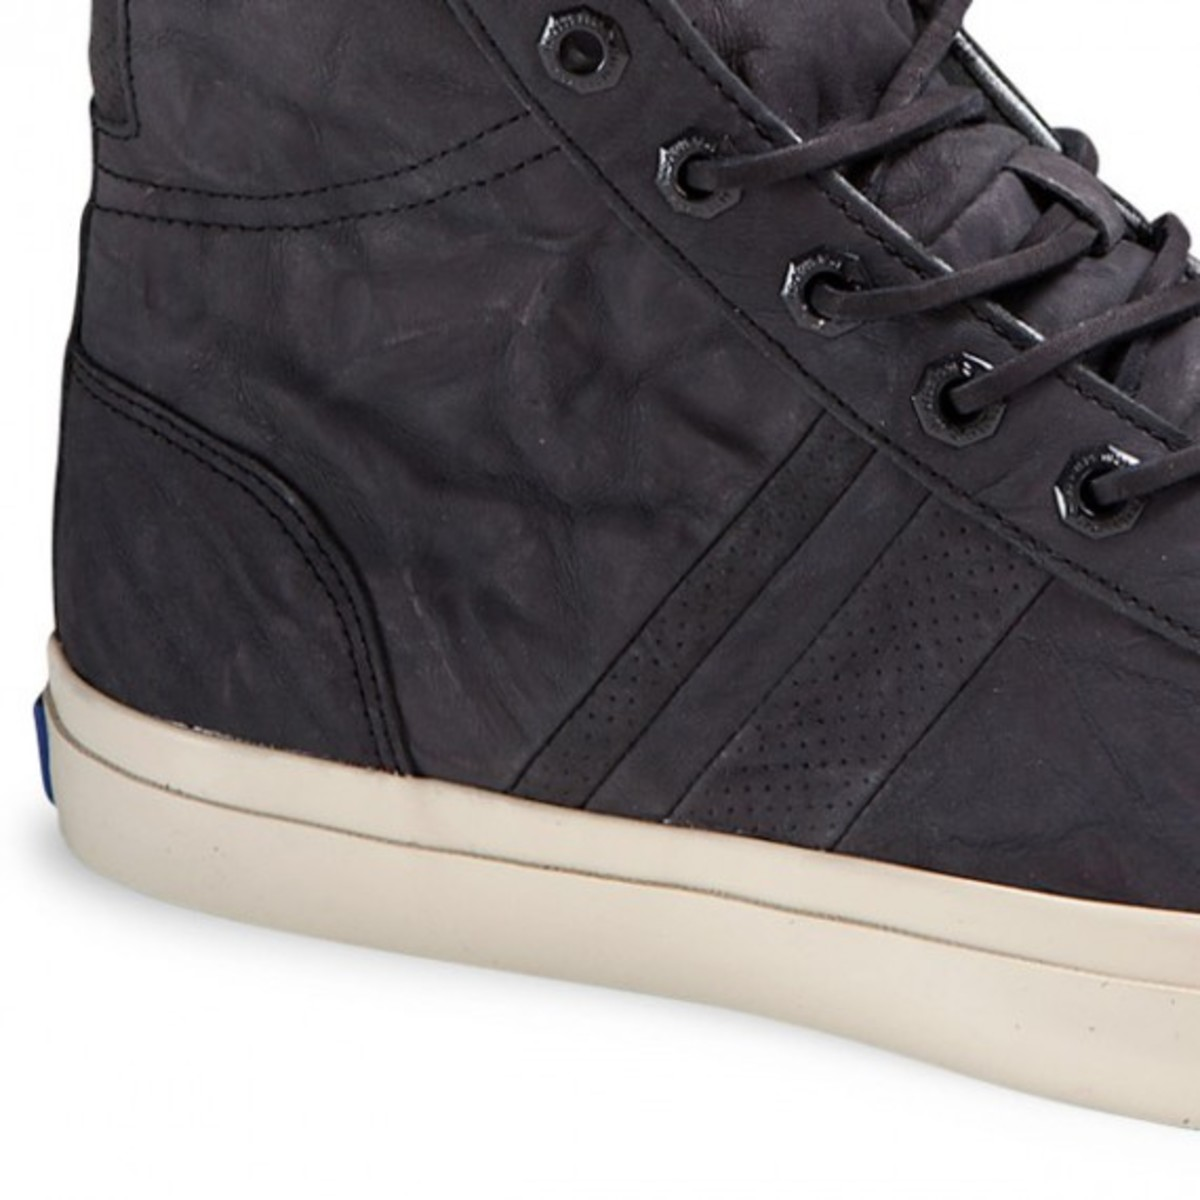 royal-plus-hi-nubuck-05